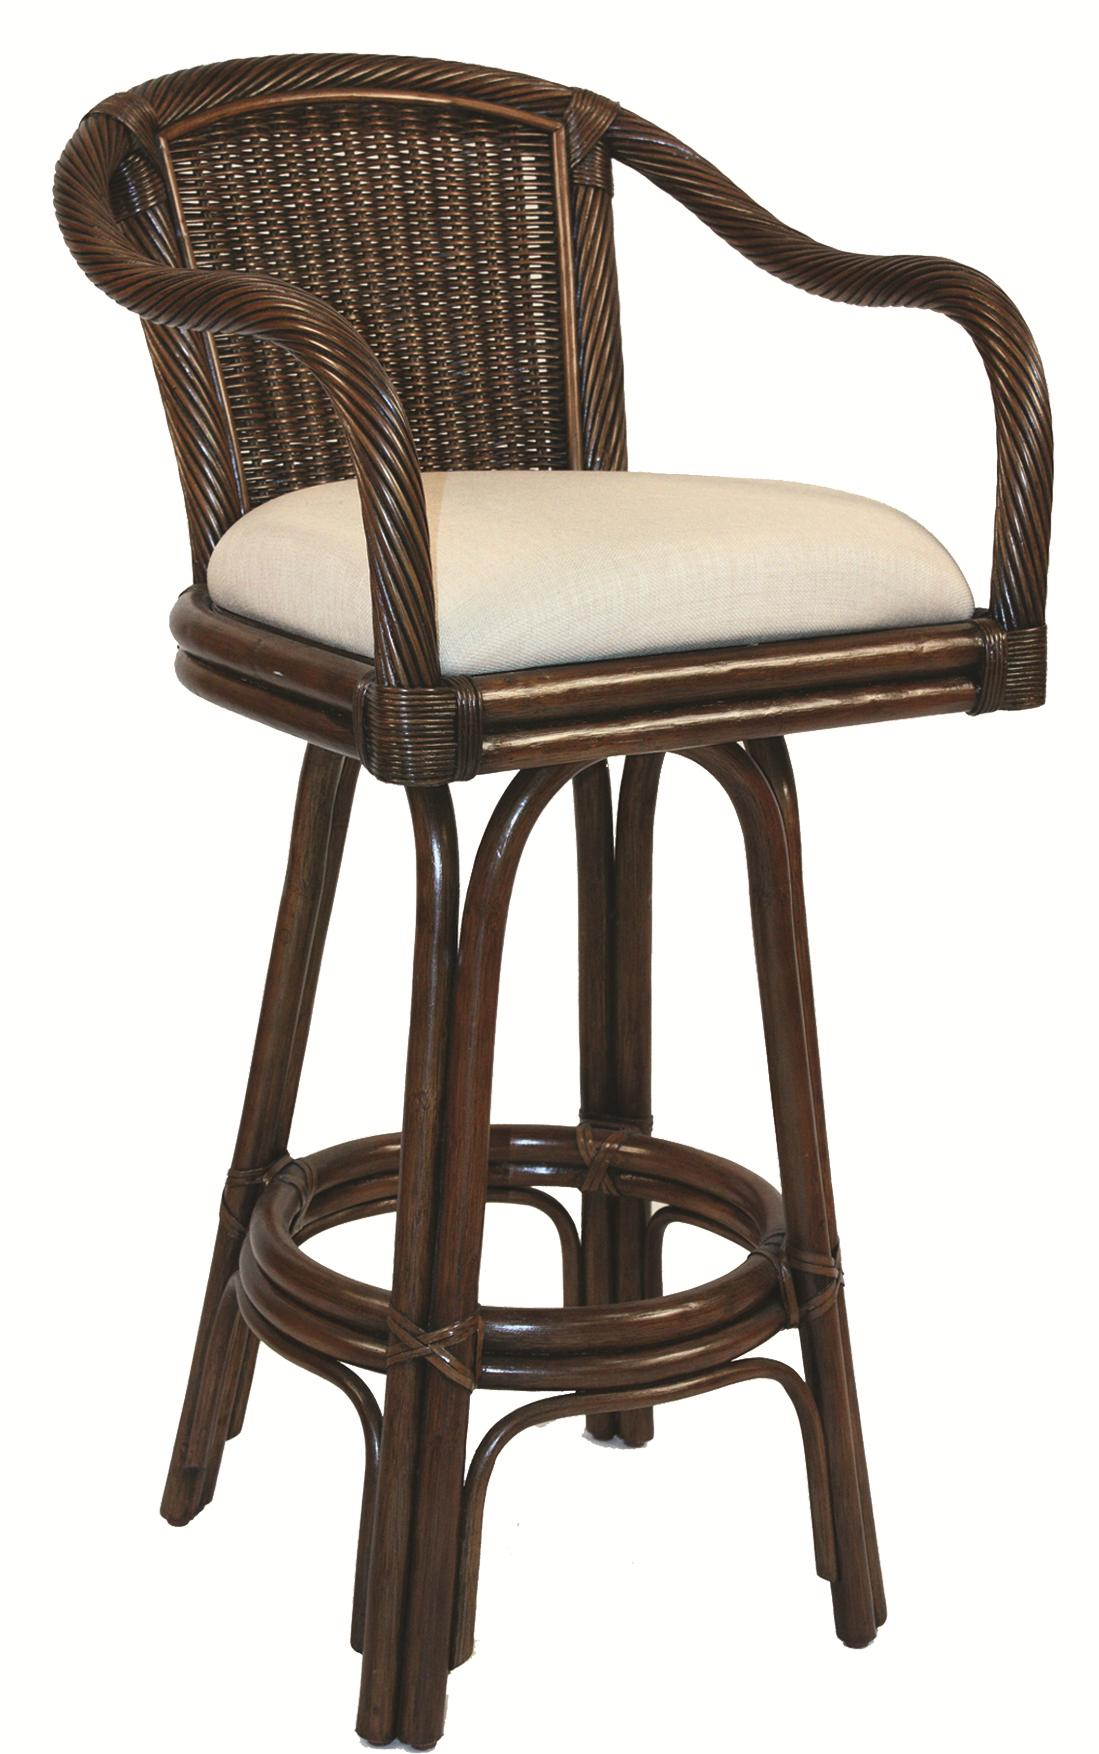 Pelican Reef Bar Stools Pr 30 Quot Barstool With Upholstered